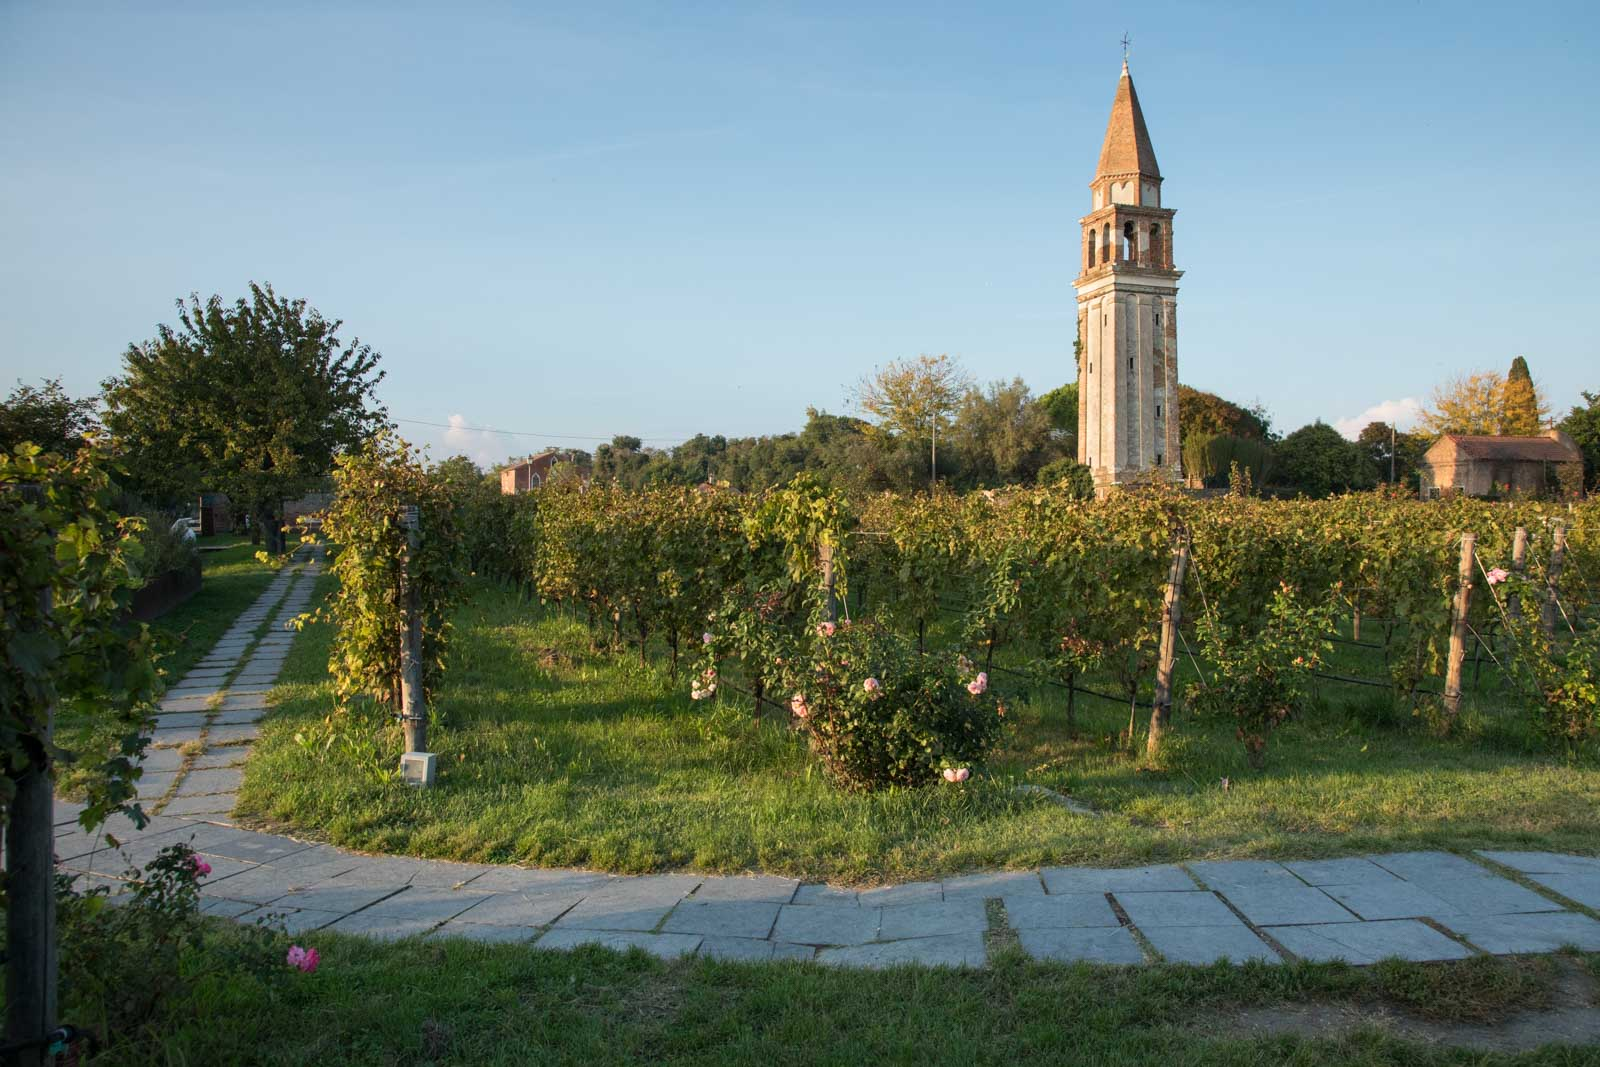 The vineyard and campanile at Venissa on the island of Mazzorbo. ©Kevin Day/Opening a Bottle